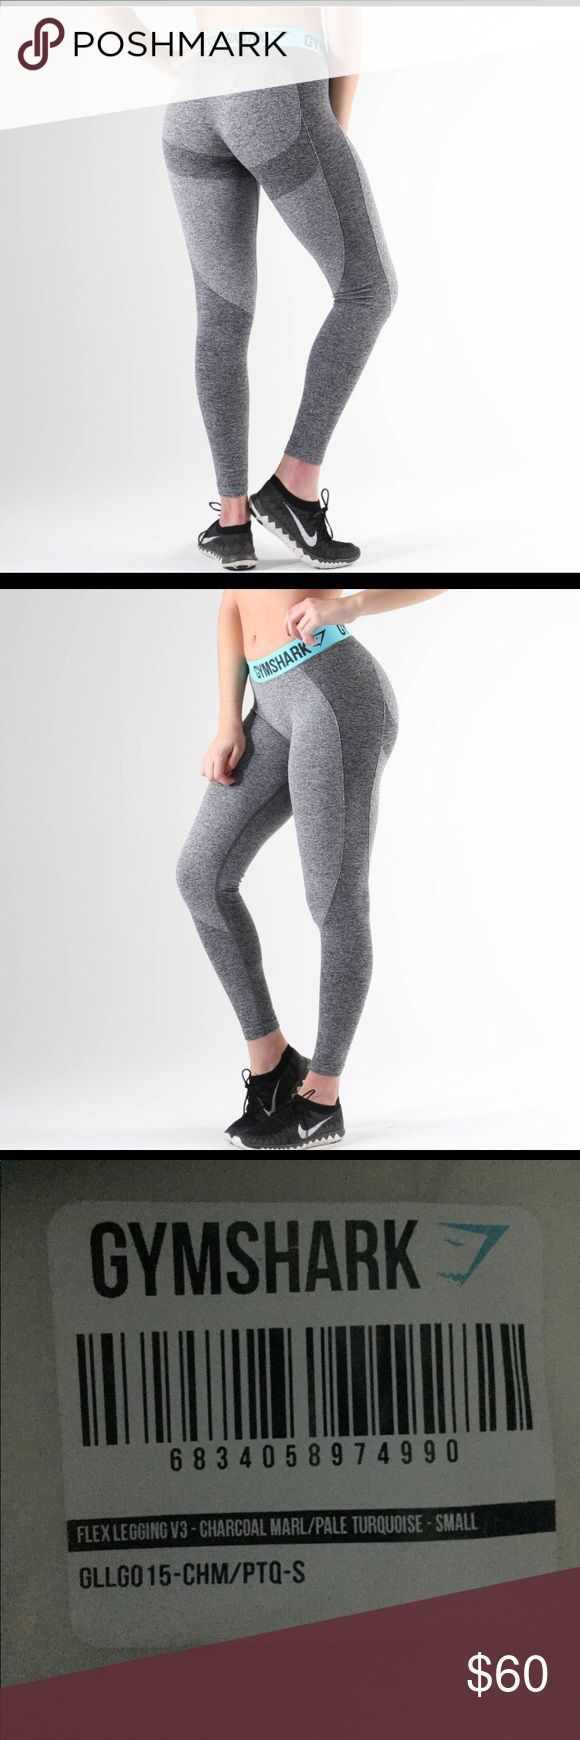 NWT Gym Shark Flex Legging Charcoal Marl/Turquoise Supper comfy athletic leggings with shadowing that helps shape your bottom! I've been dying to get my hands on these, sold out on the gym shark website. Unfortunately they're too long on me 🙁 Gymshark Pants Leggings